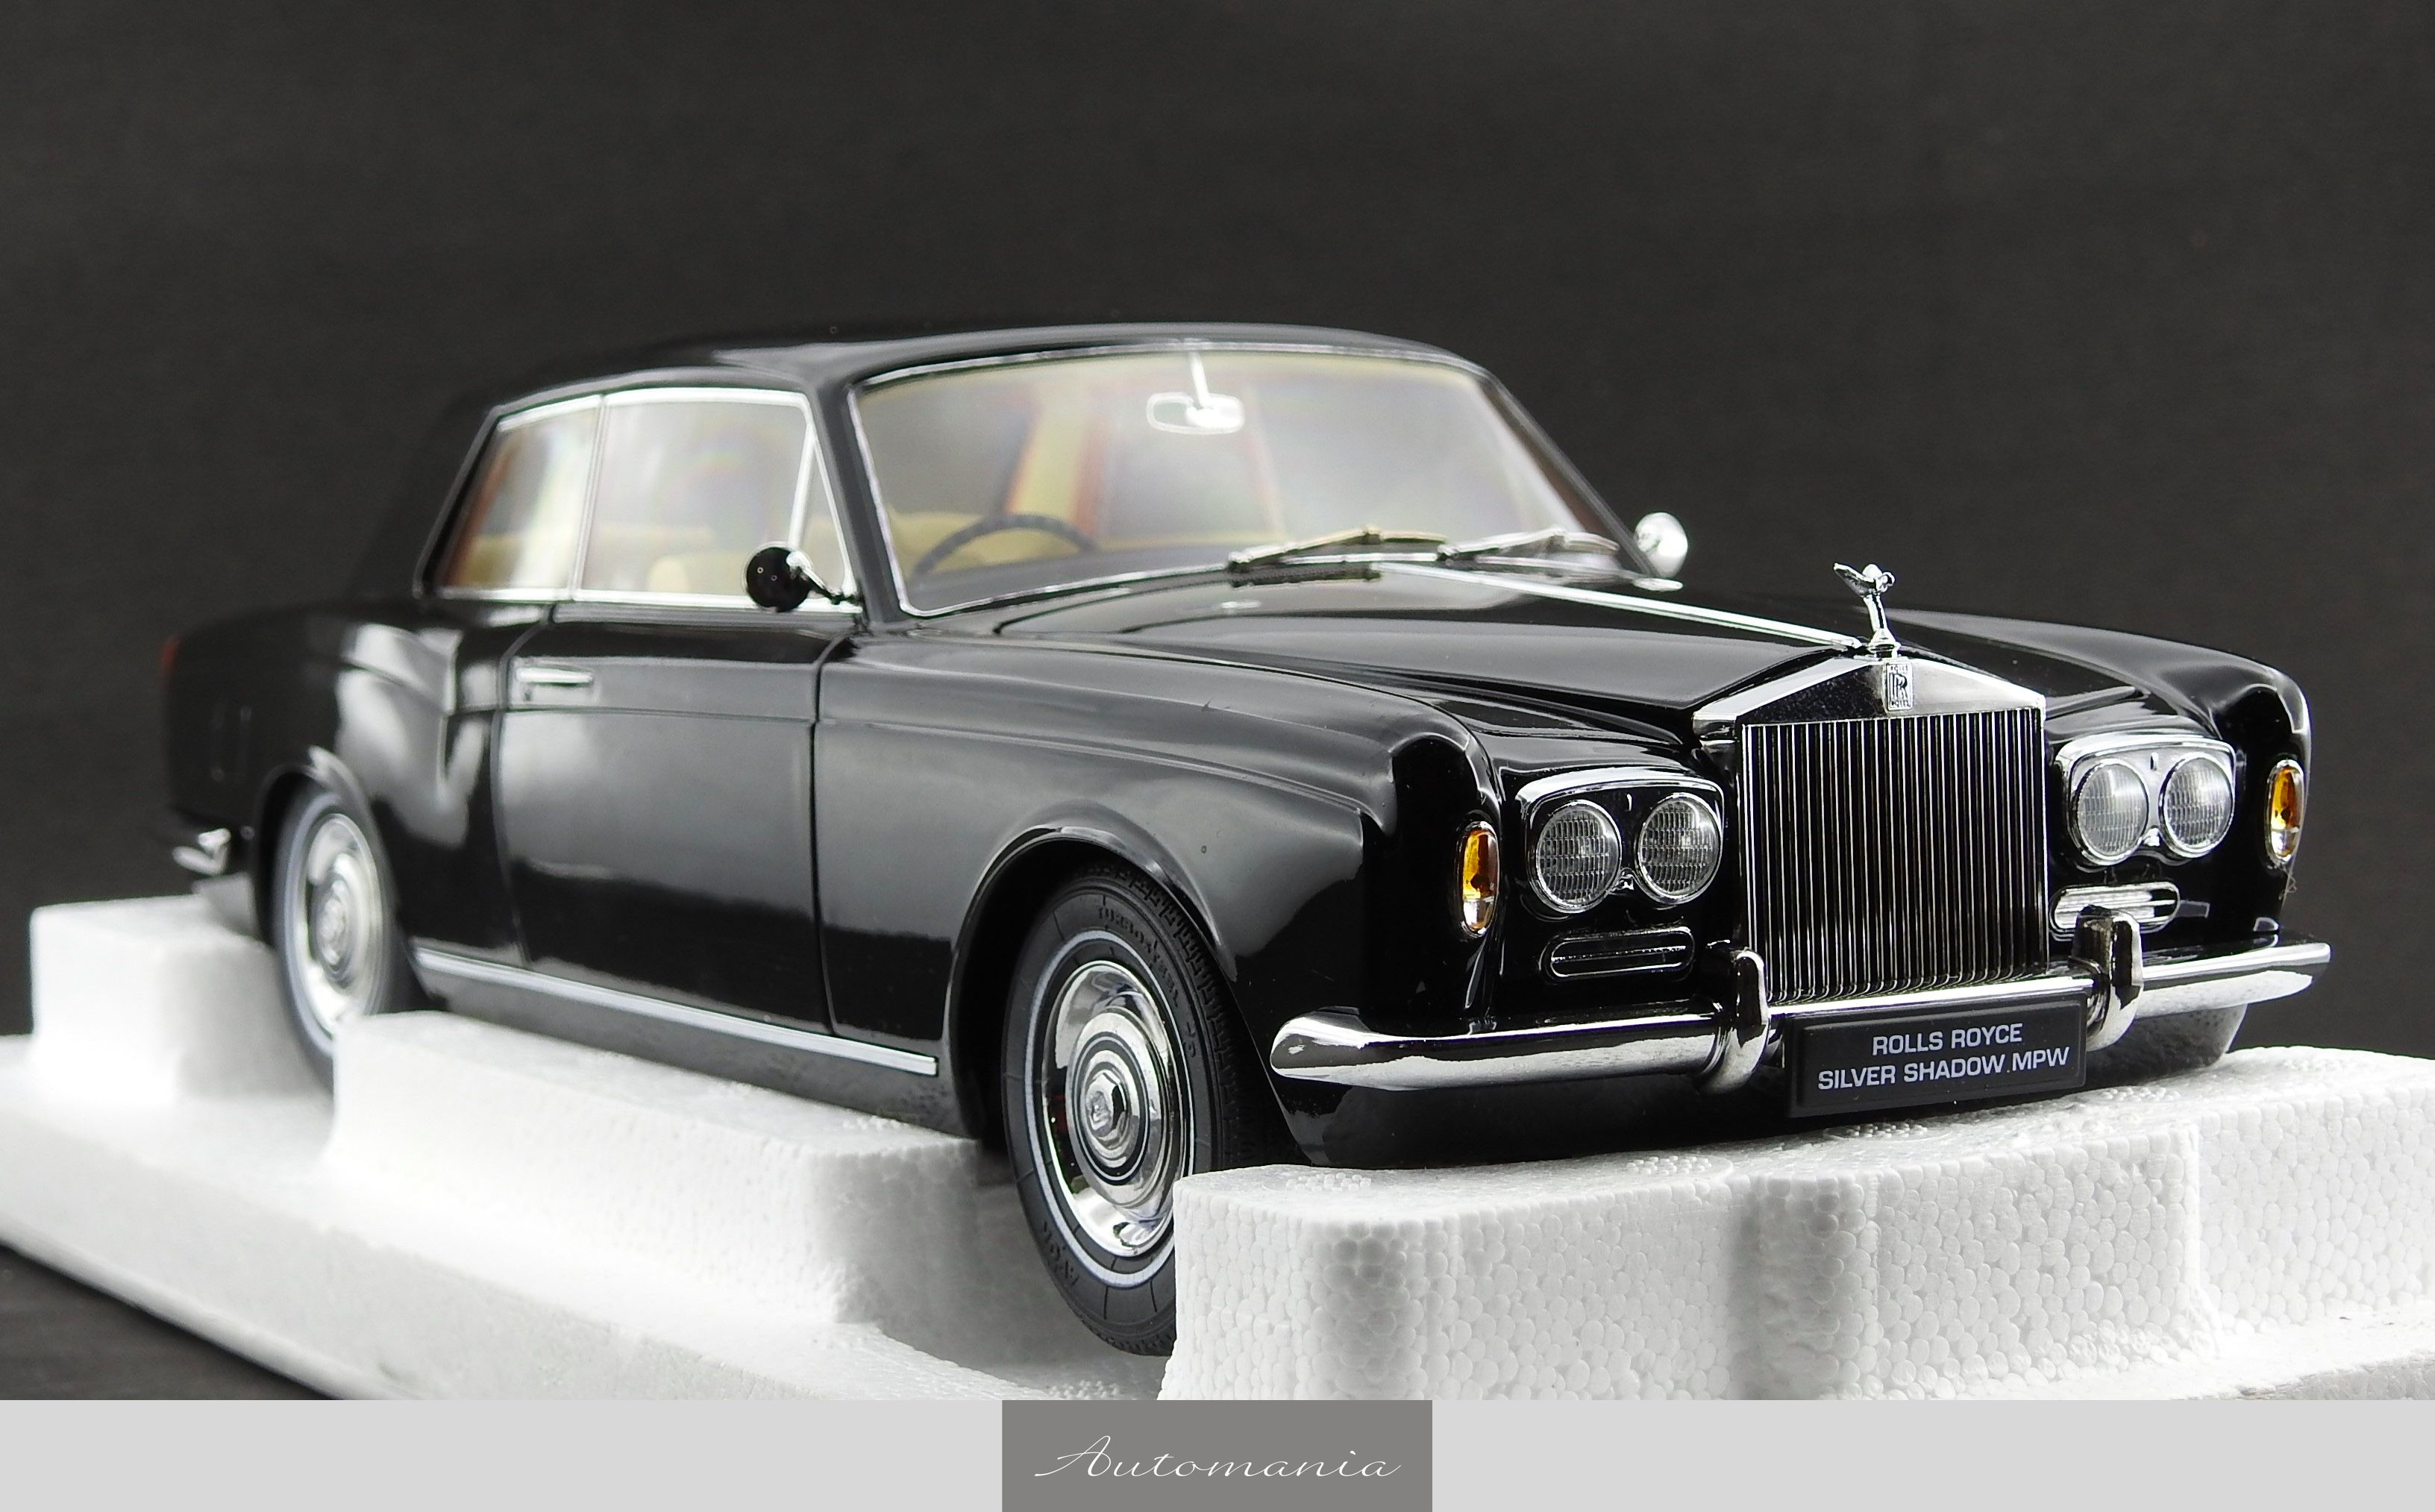 rolls royce silver shadow mpw 2 door coupe black automania. Black Bedroom Furniture Sets. Home Design Ideas